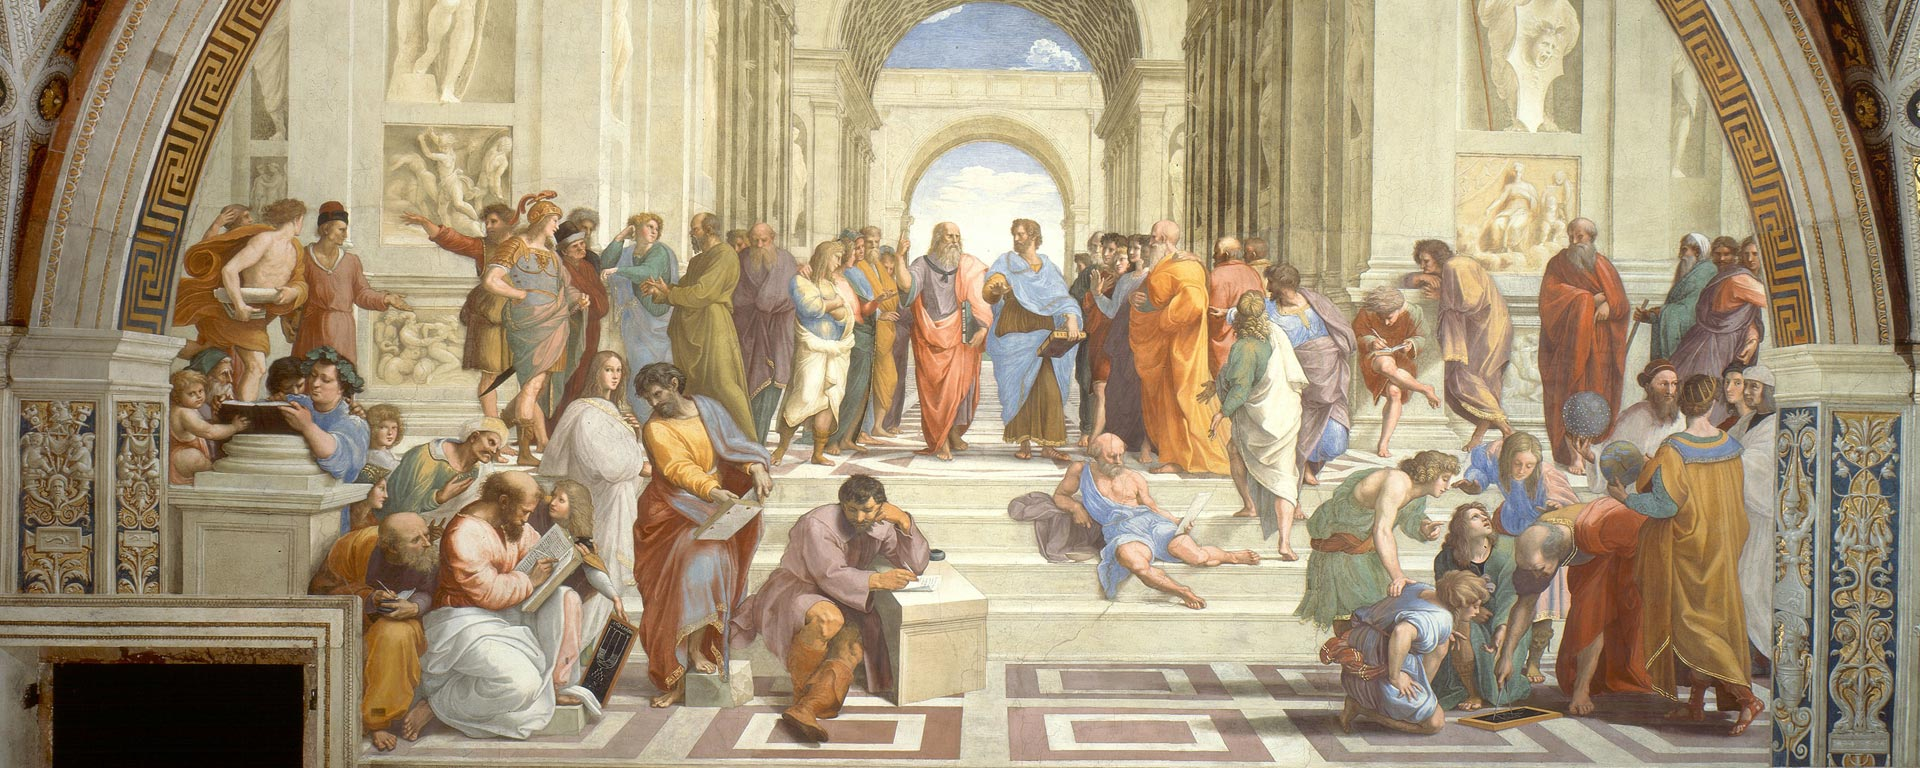 Raphael, School of Athens